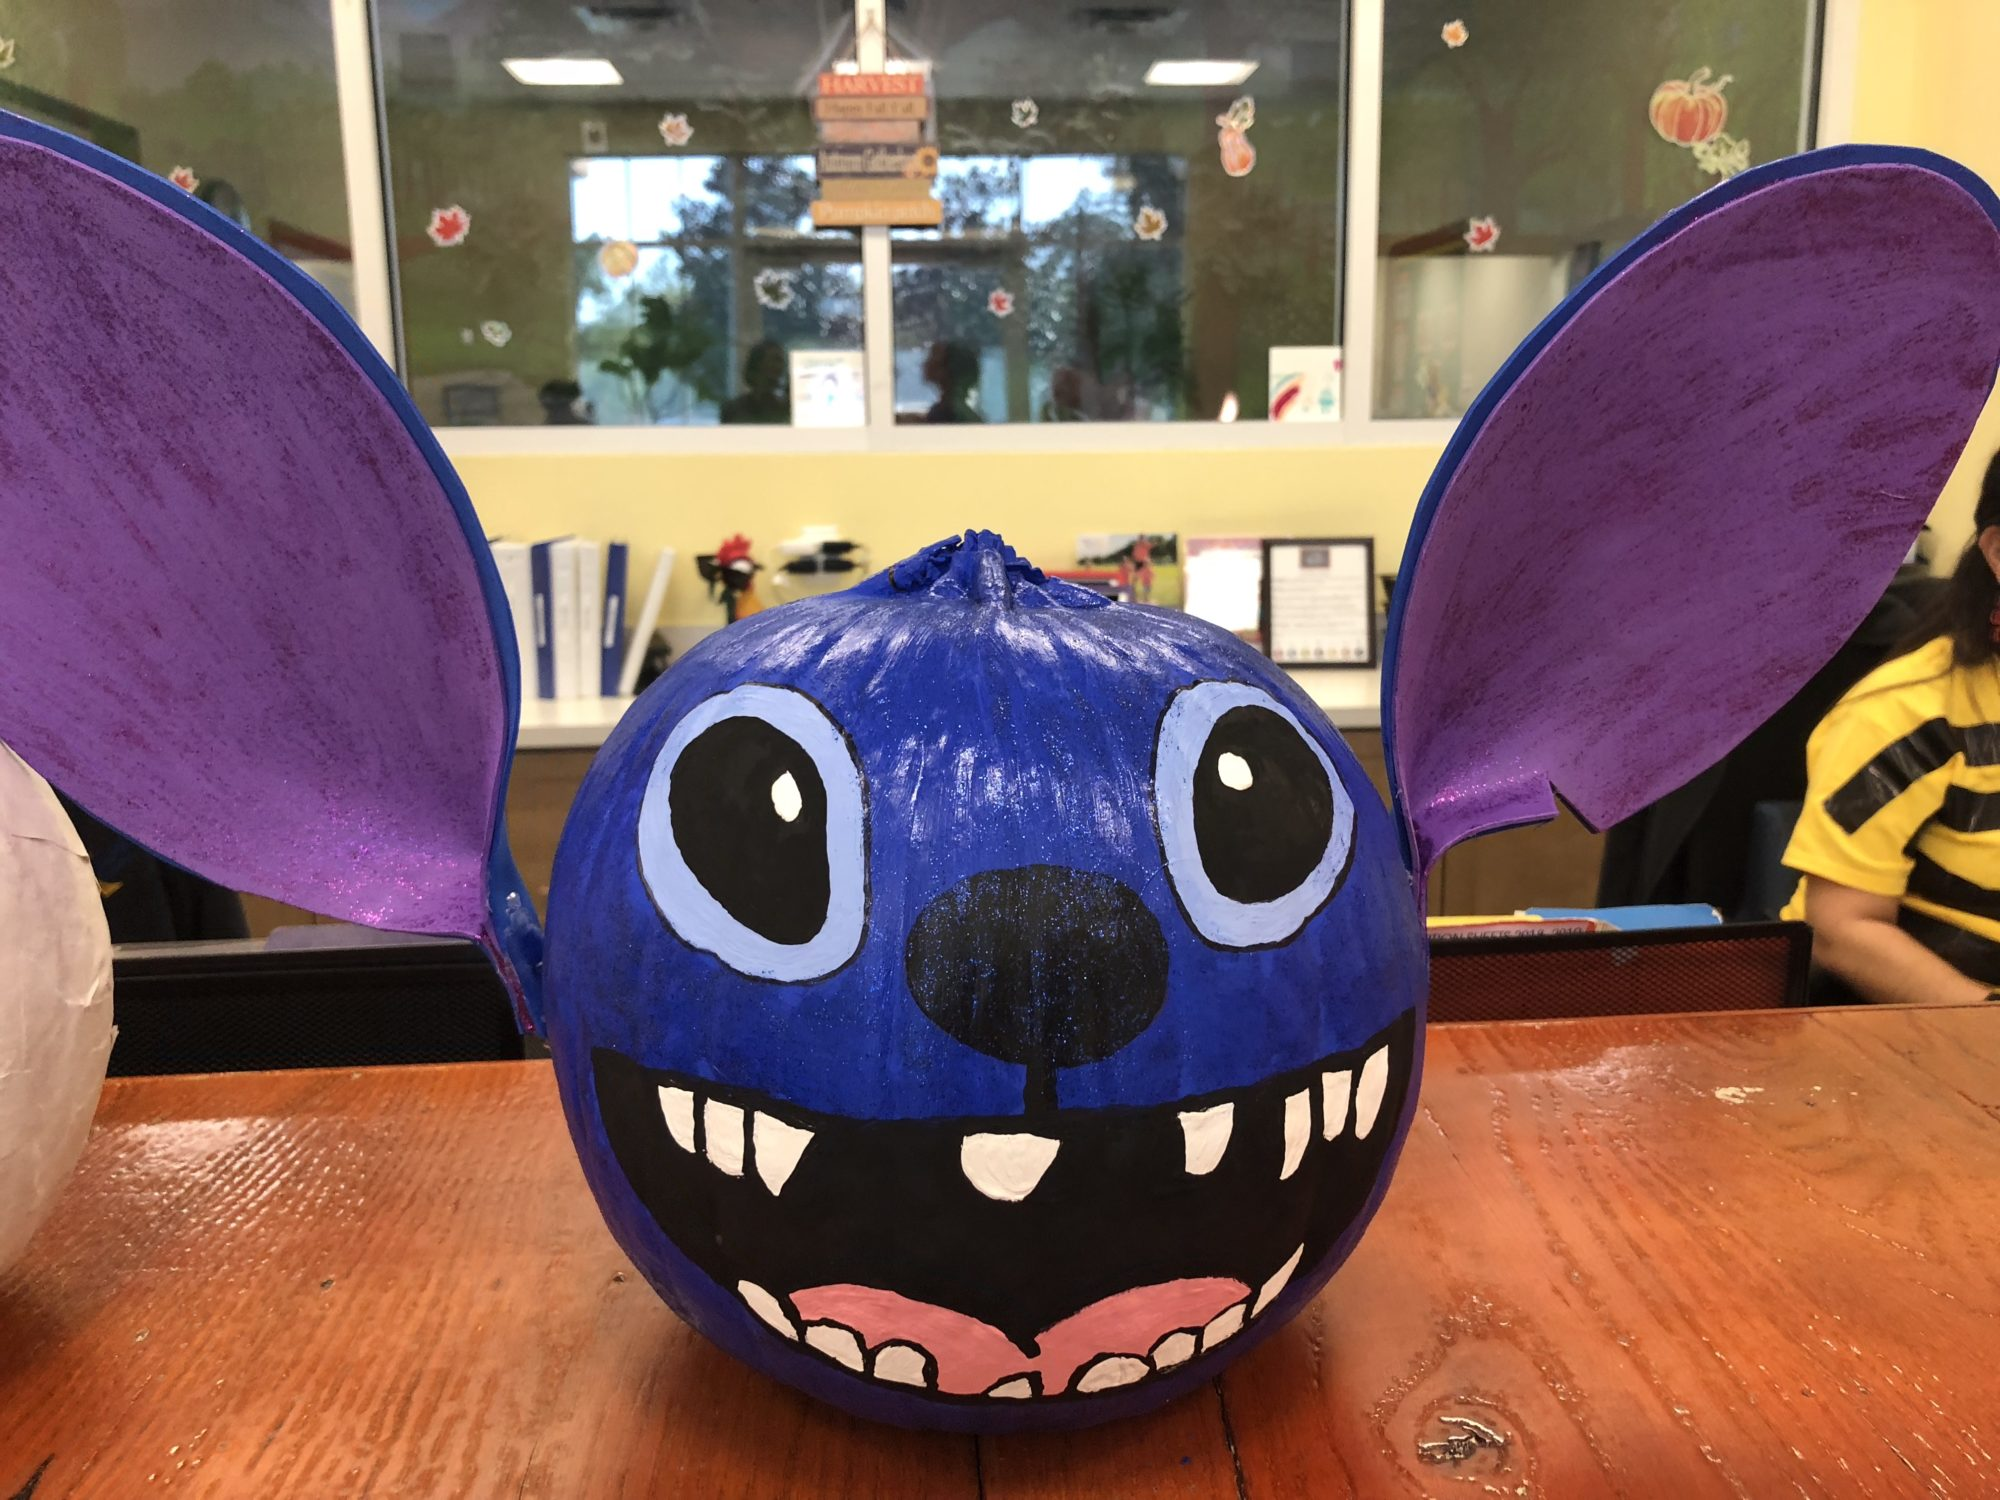 Stitch from Lilo & Stitch No Carve Pumpkin